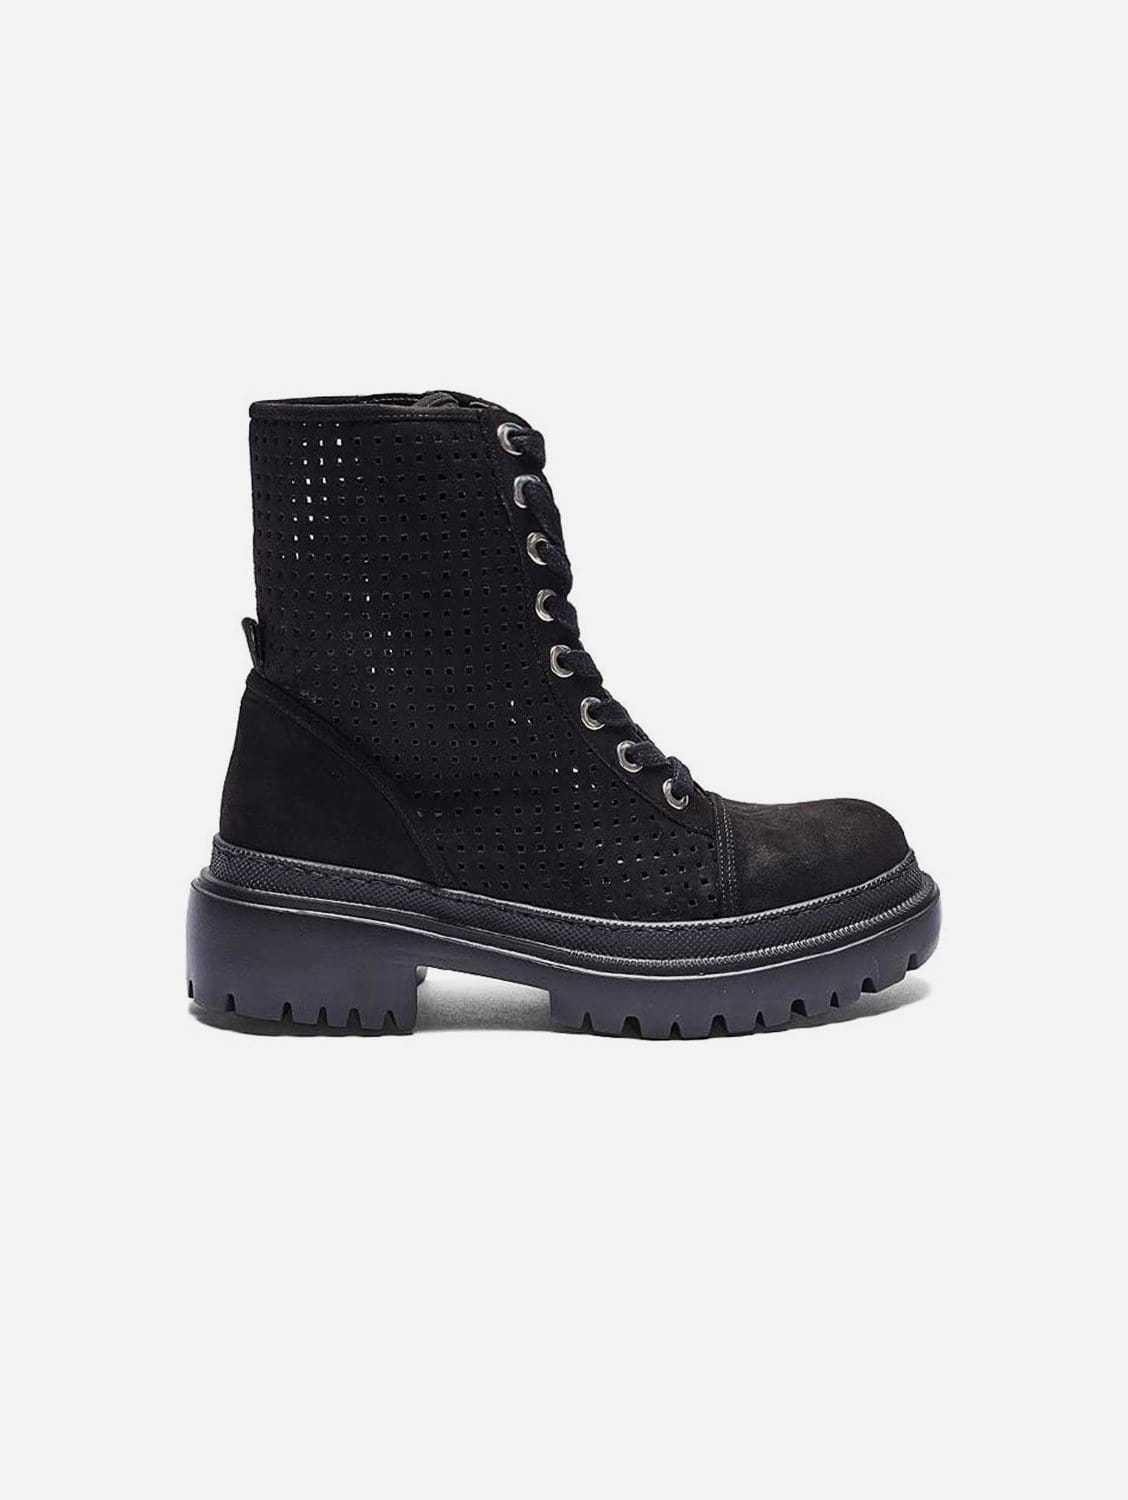 Juno Recycled Polyester Vegan Suede Summer Boot   Black